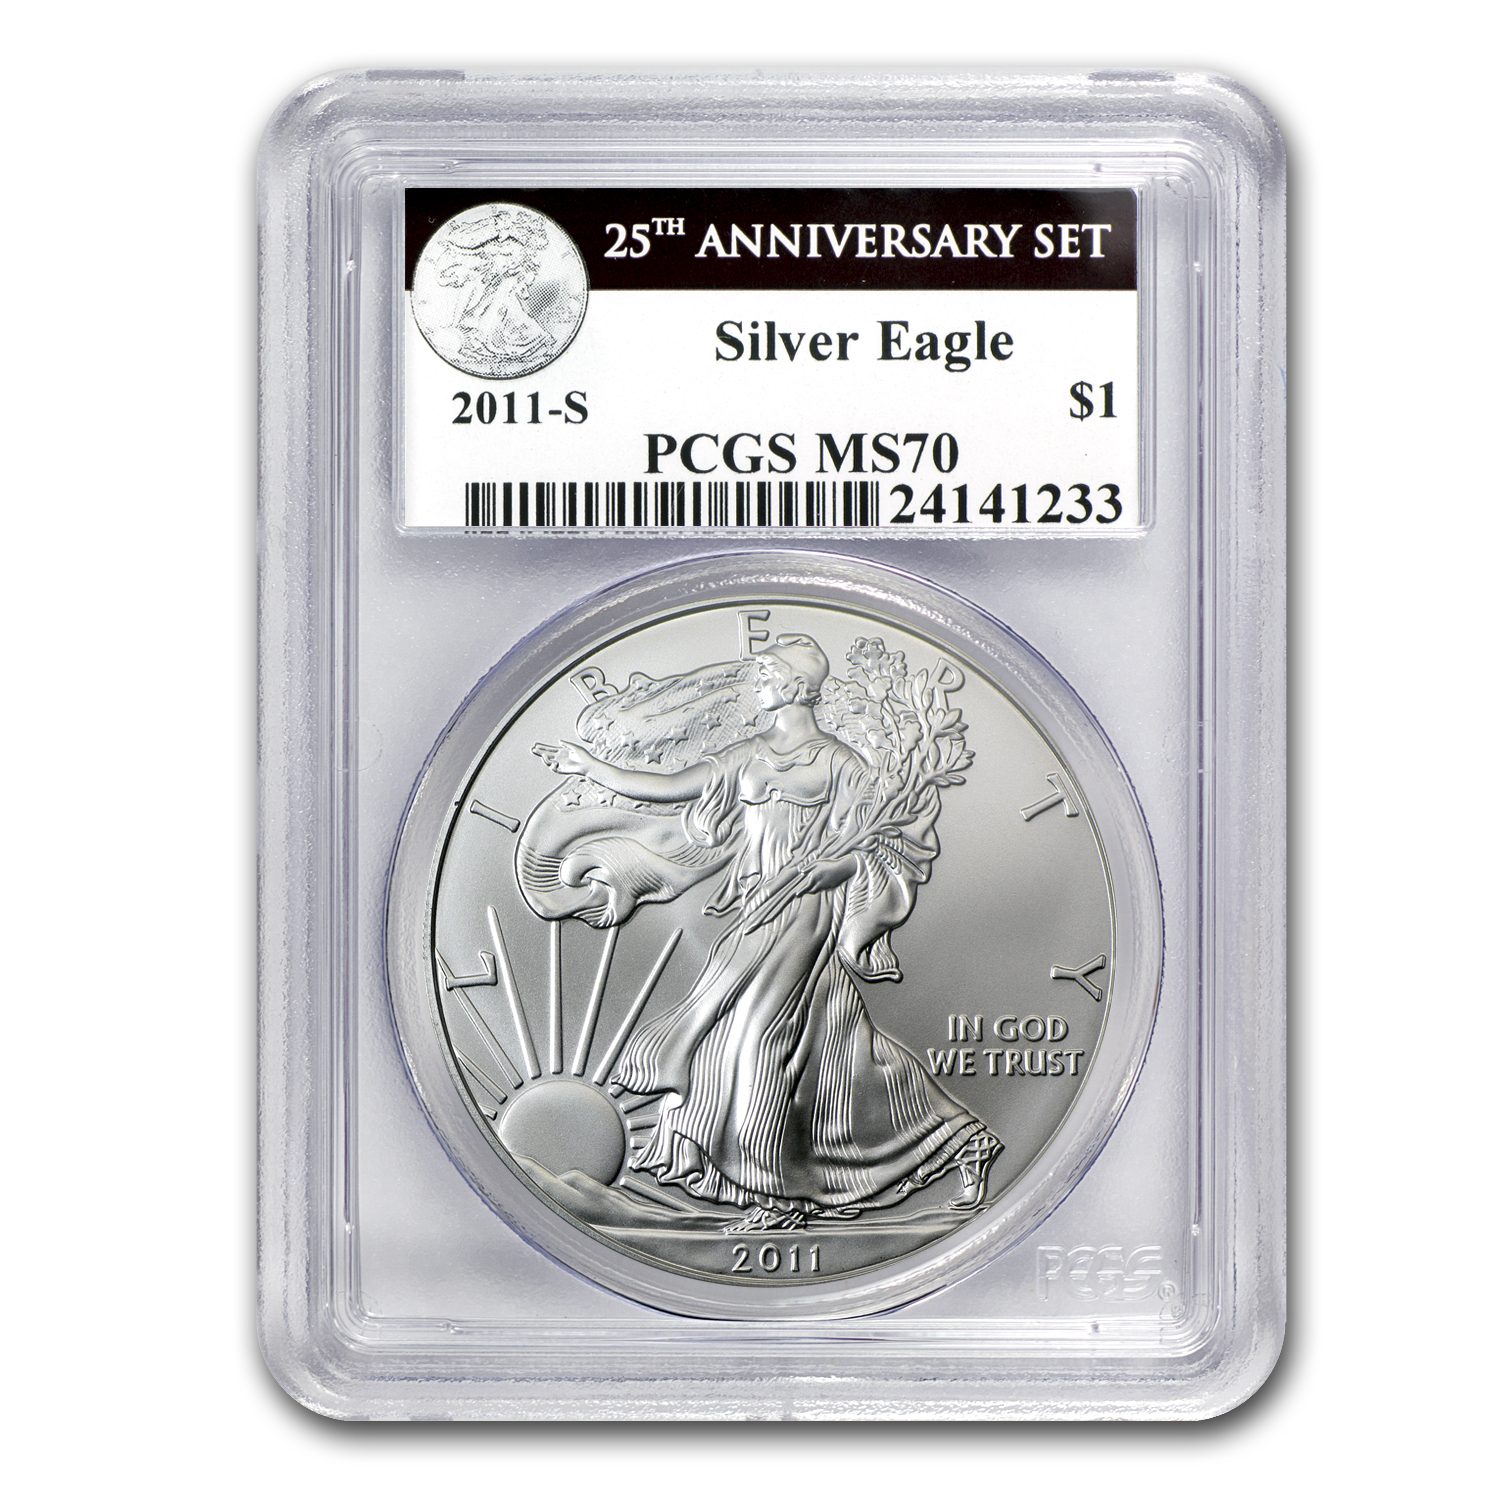 2011-S Silver Eagle 25th Anniversary MS-70 PCGS Black Label